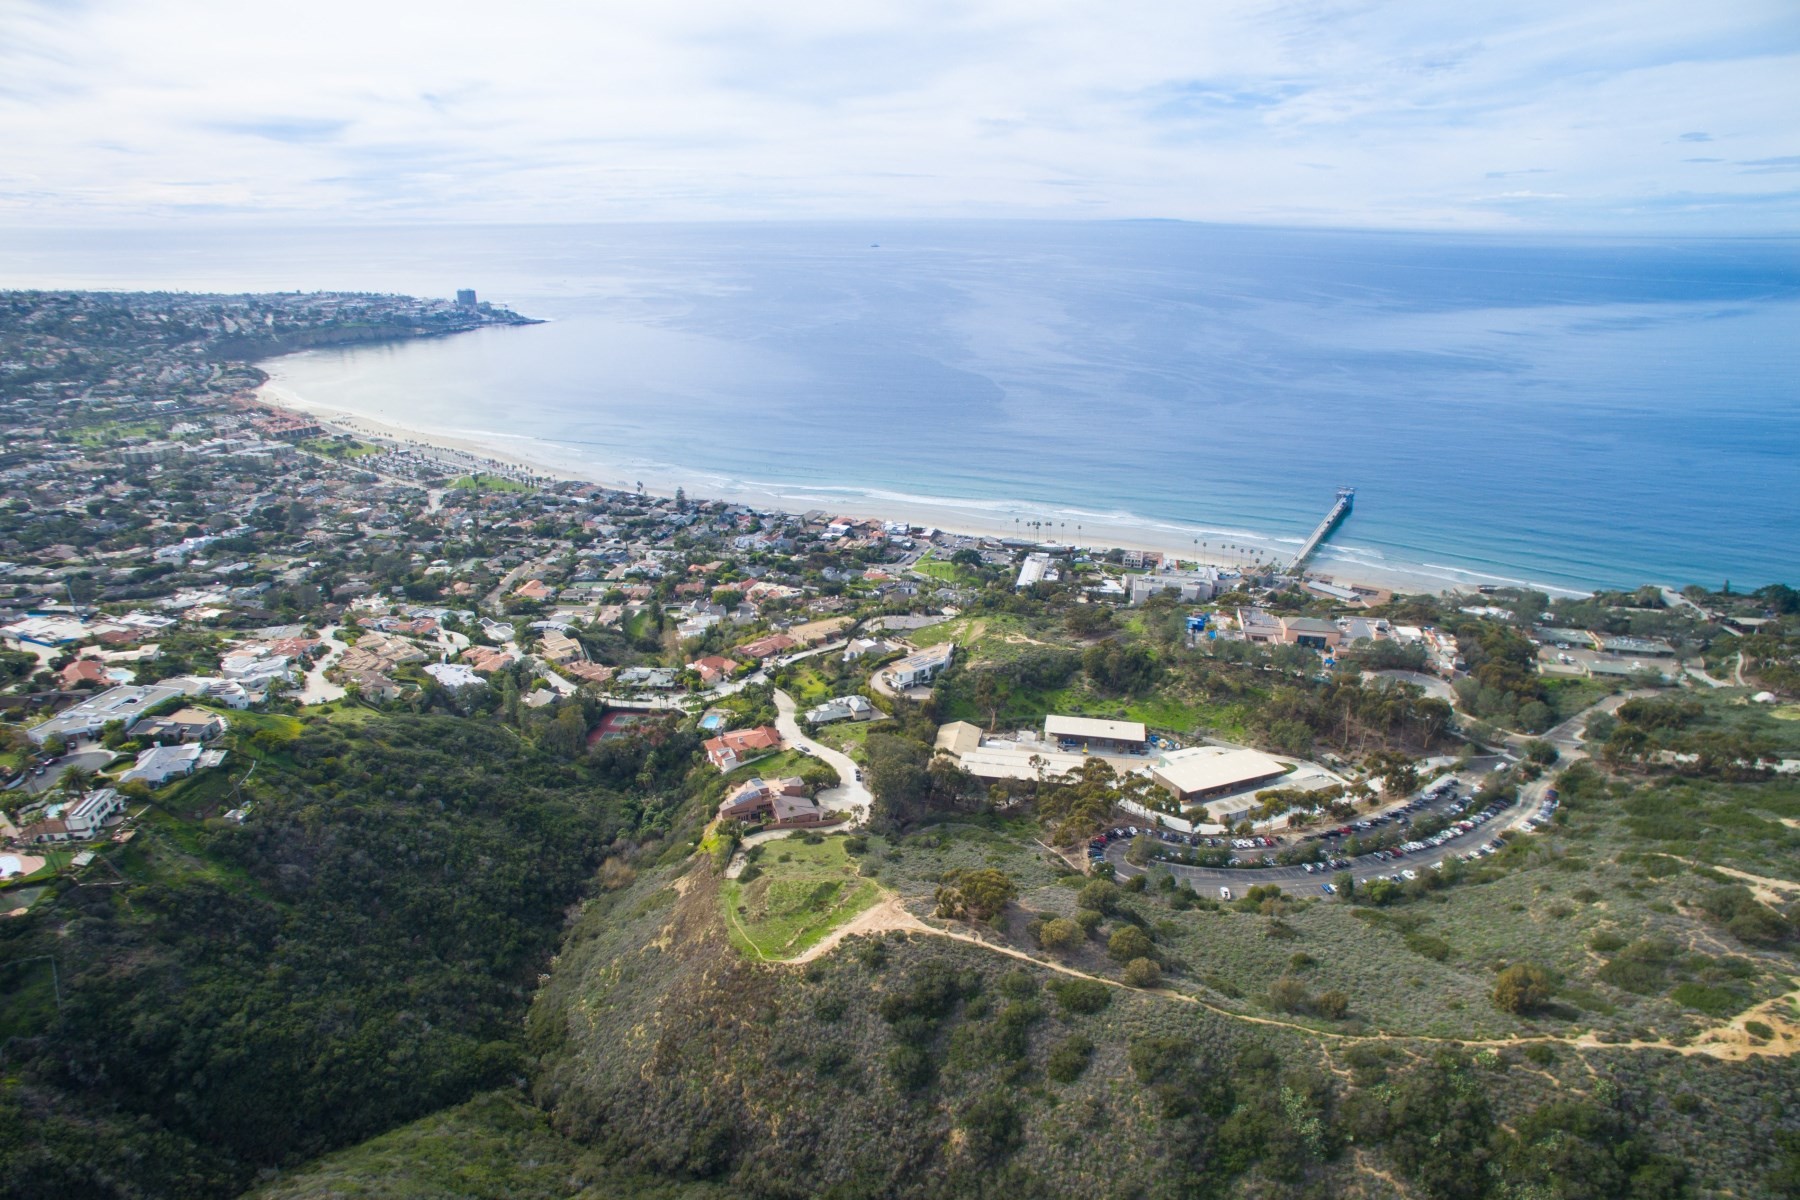 Land for Sale at Build Your Paradise 000 Ruette Nicole La Jolla, 92037 United States